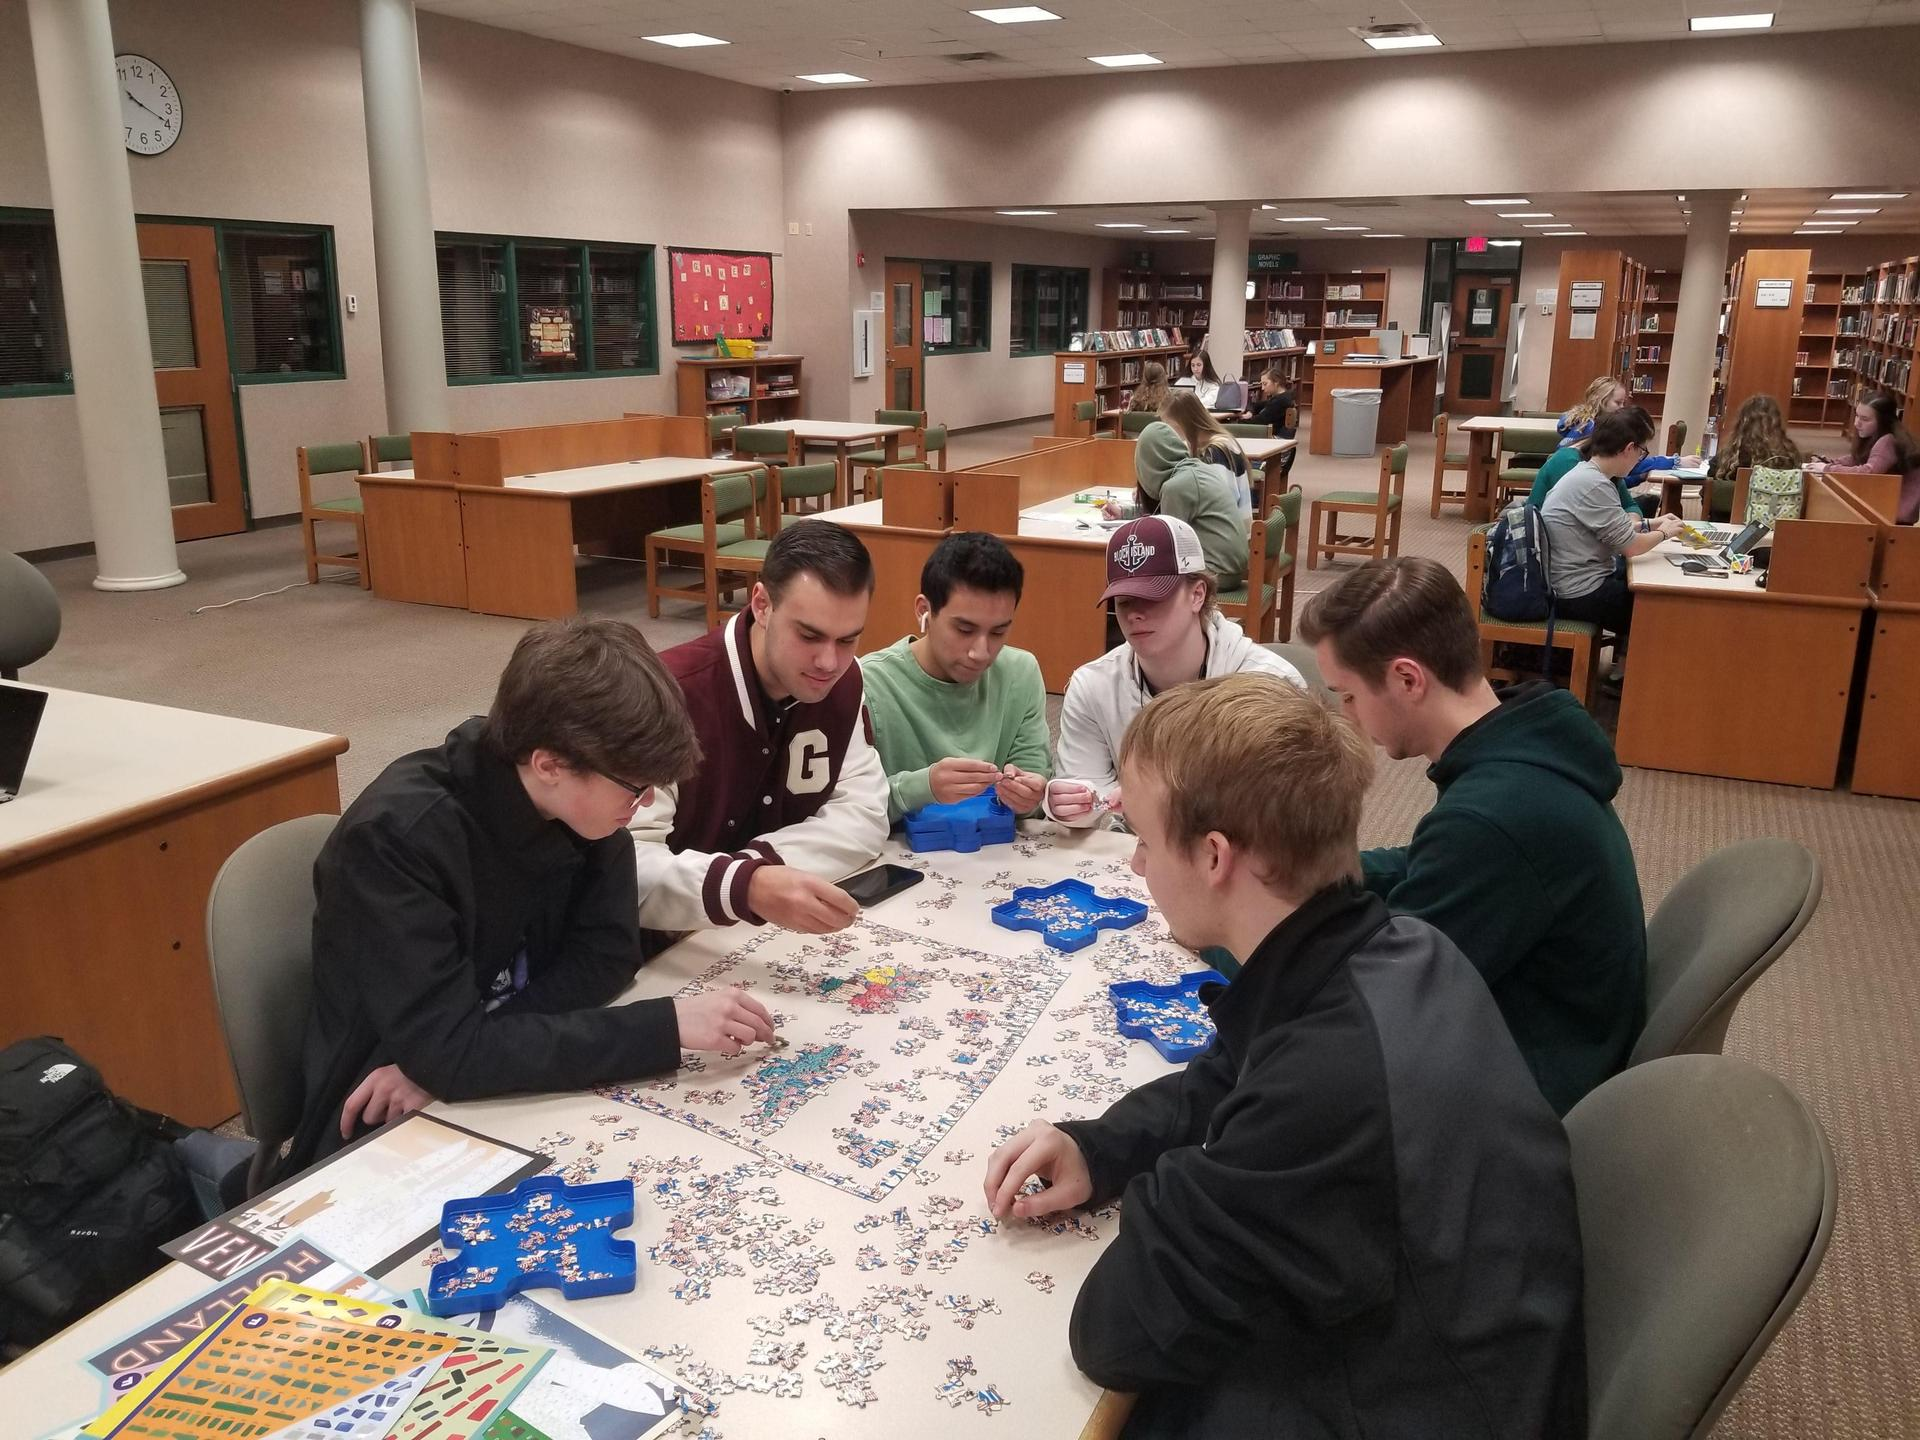 Several male students work on a jigsaw puzzle together at a table